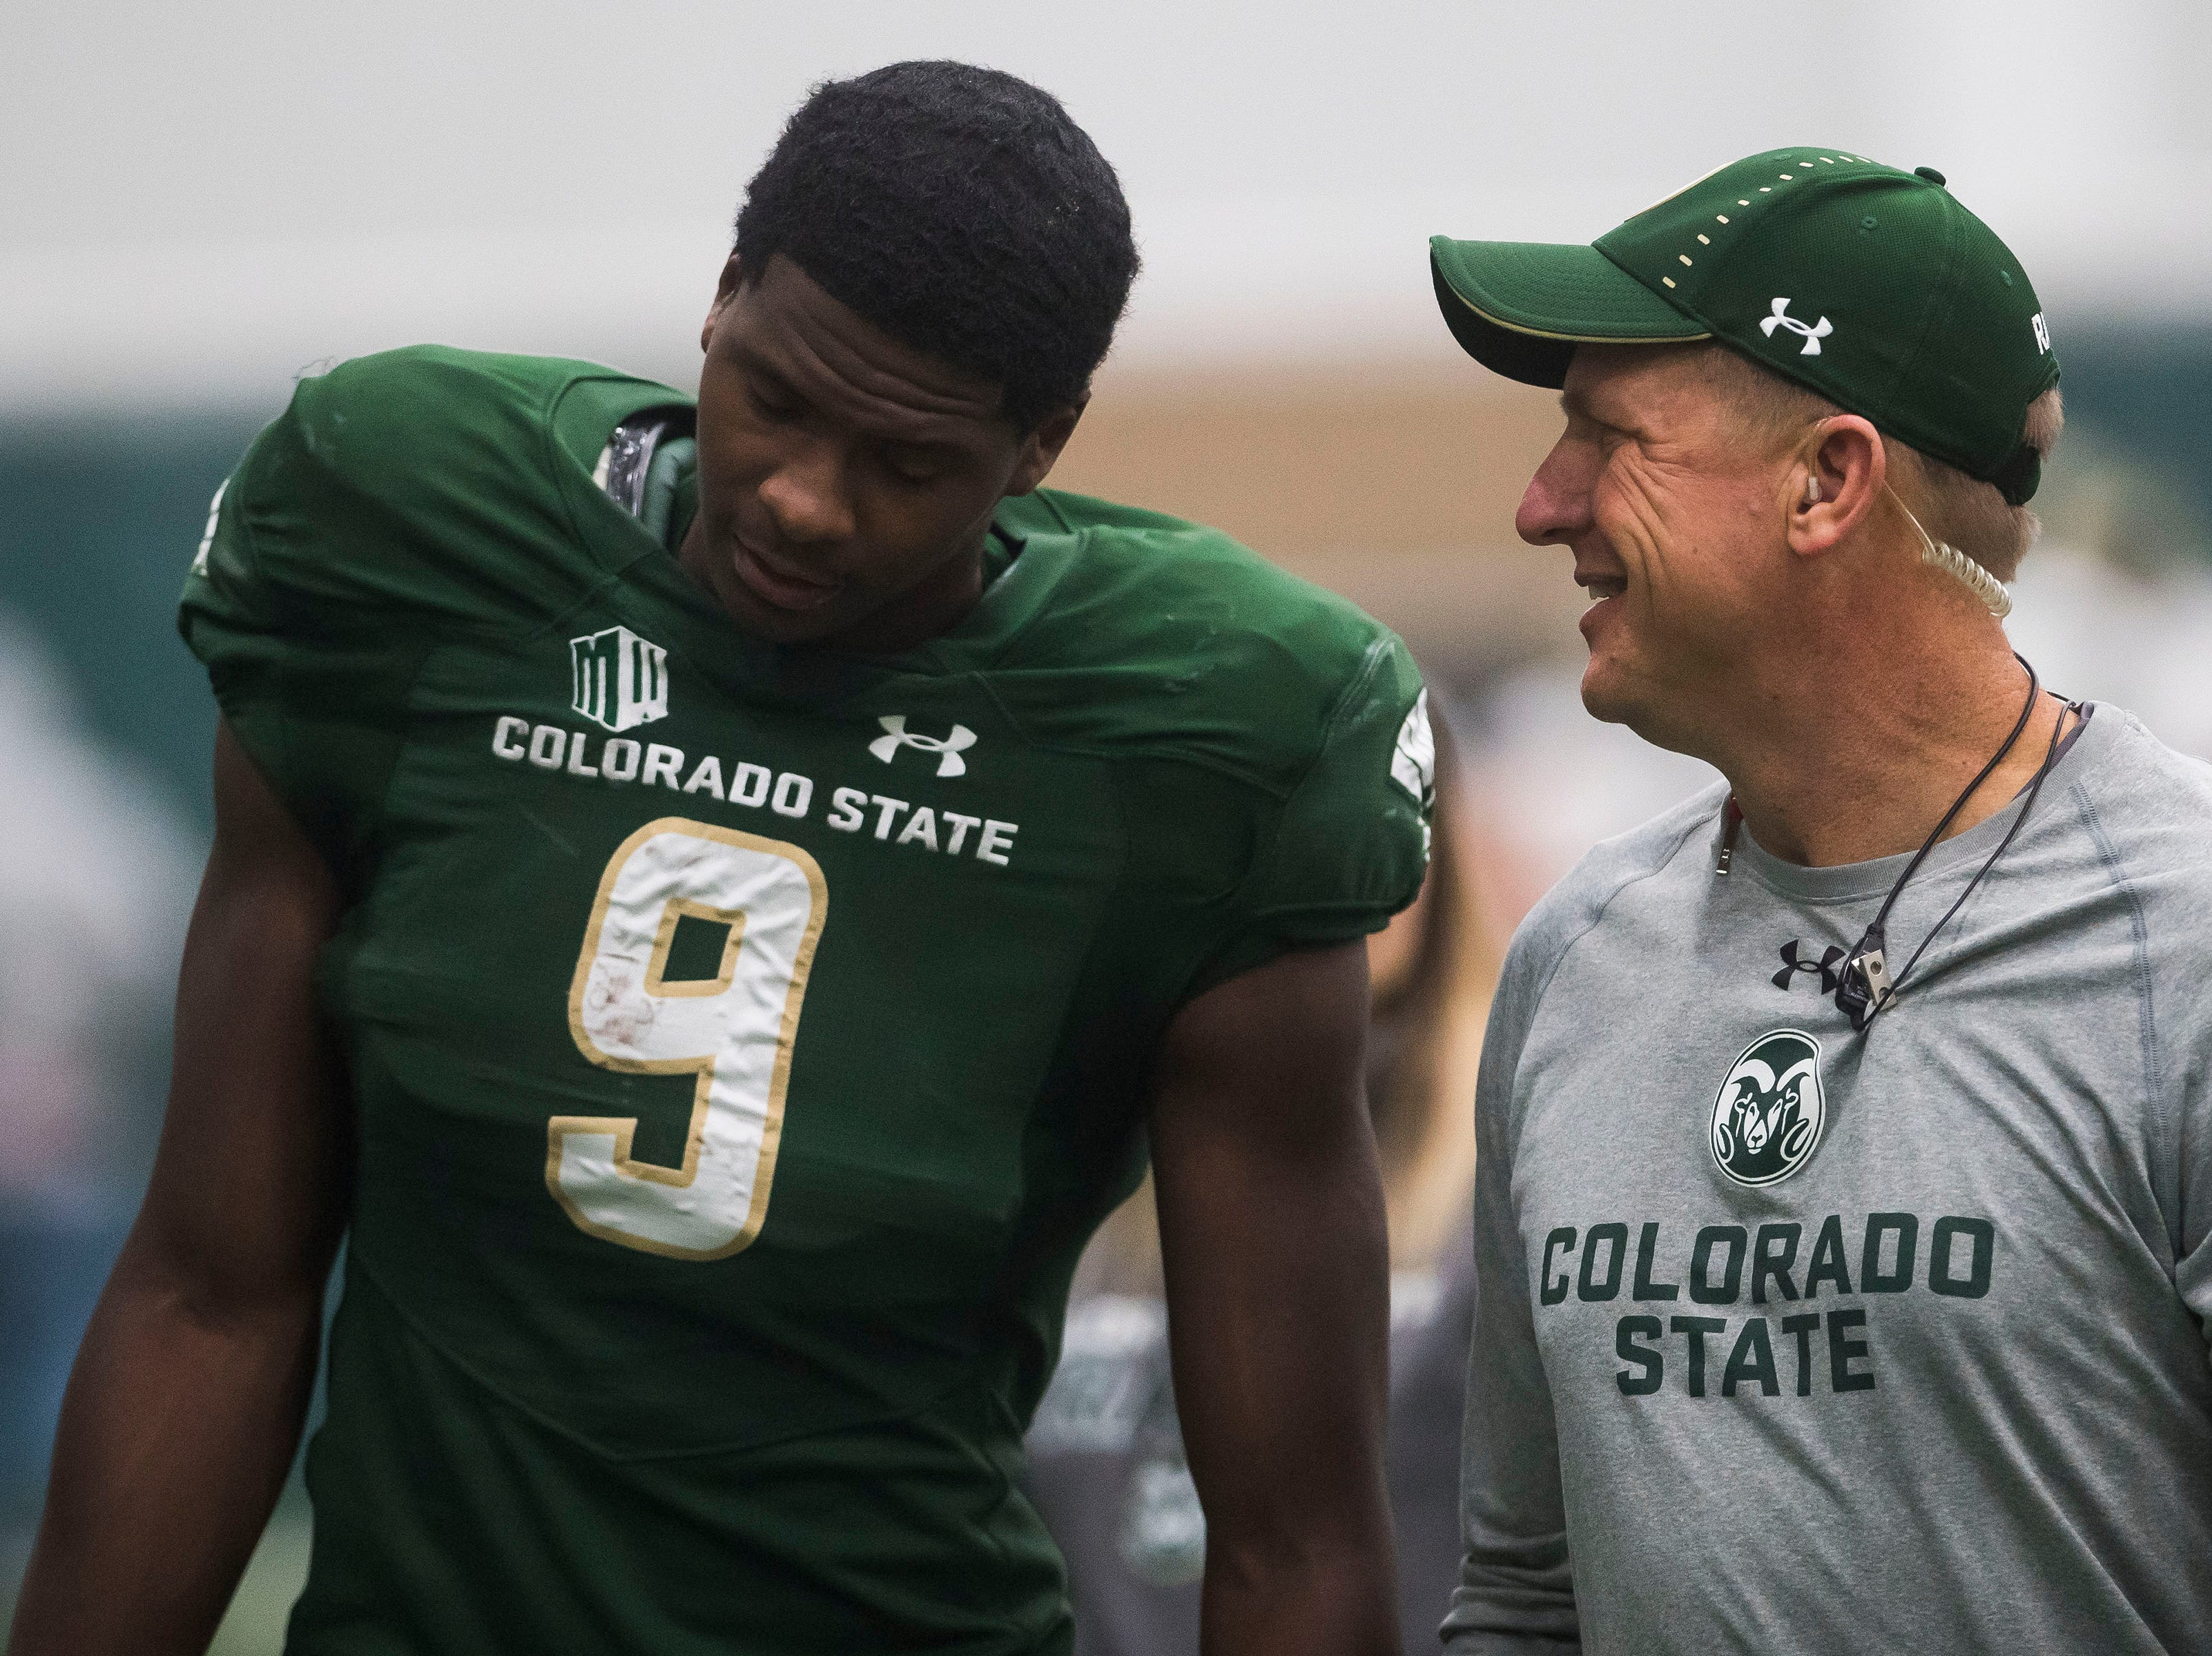 CSU junior receiver Warren Jackson (9) talks to a coach during CSU's Spring game on Thursday, March 14, 2019, at their indoor practice facility in Fort Collins, Colo.